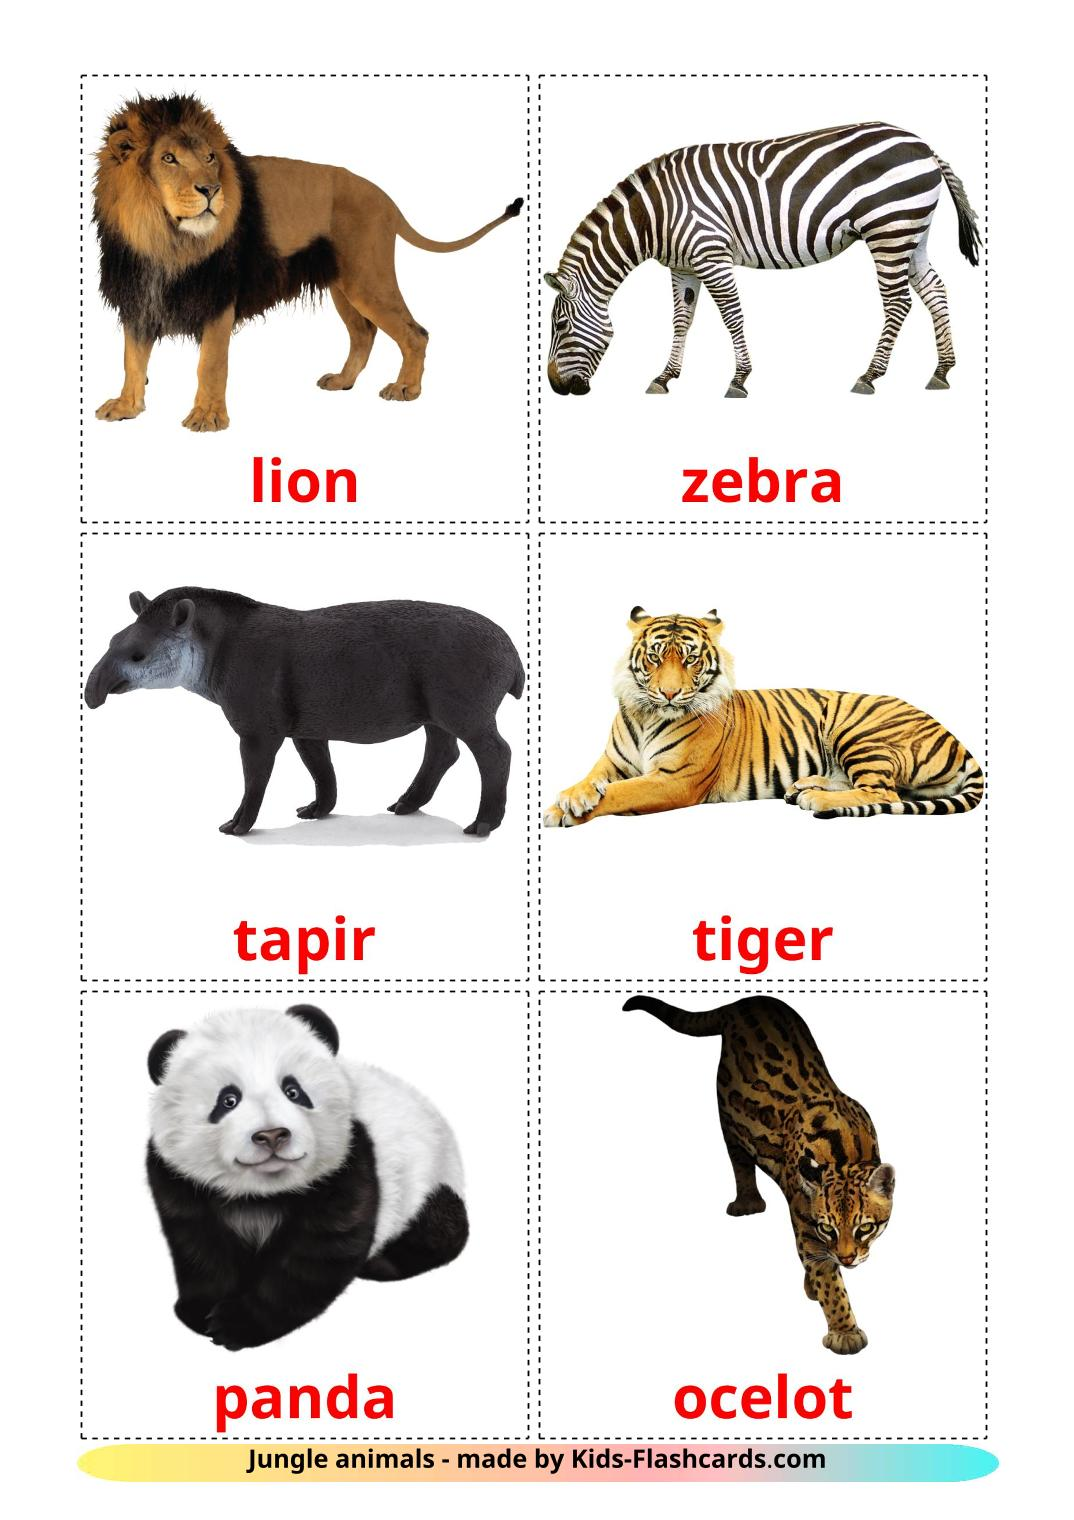 Jungle animals - 21 Free Printable english Flashcards